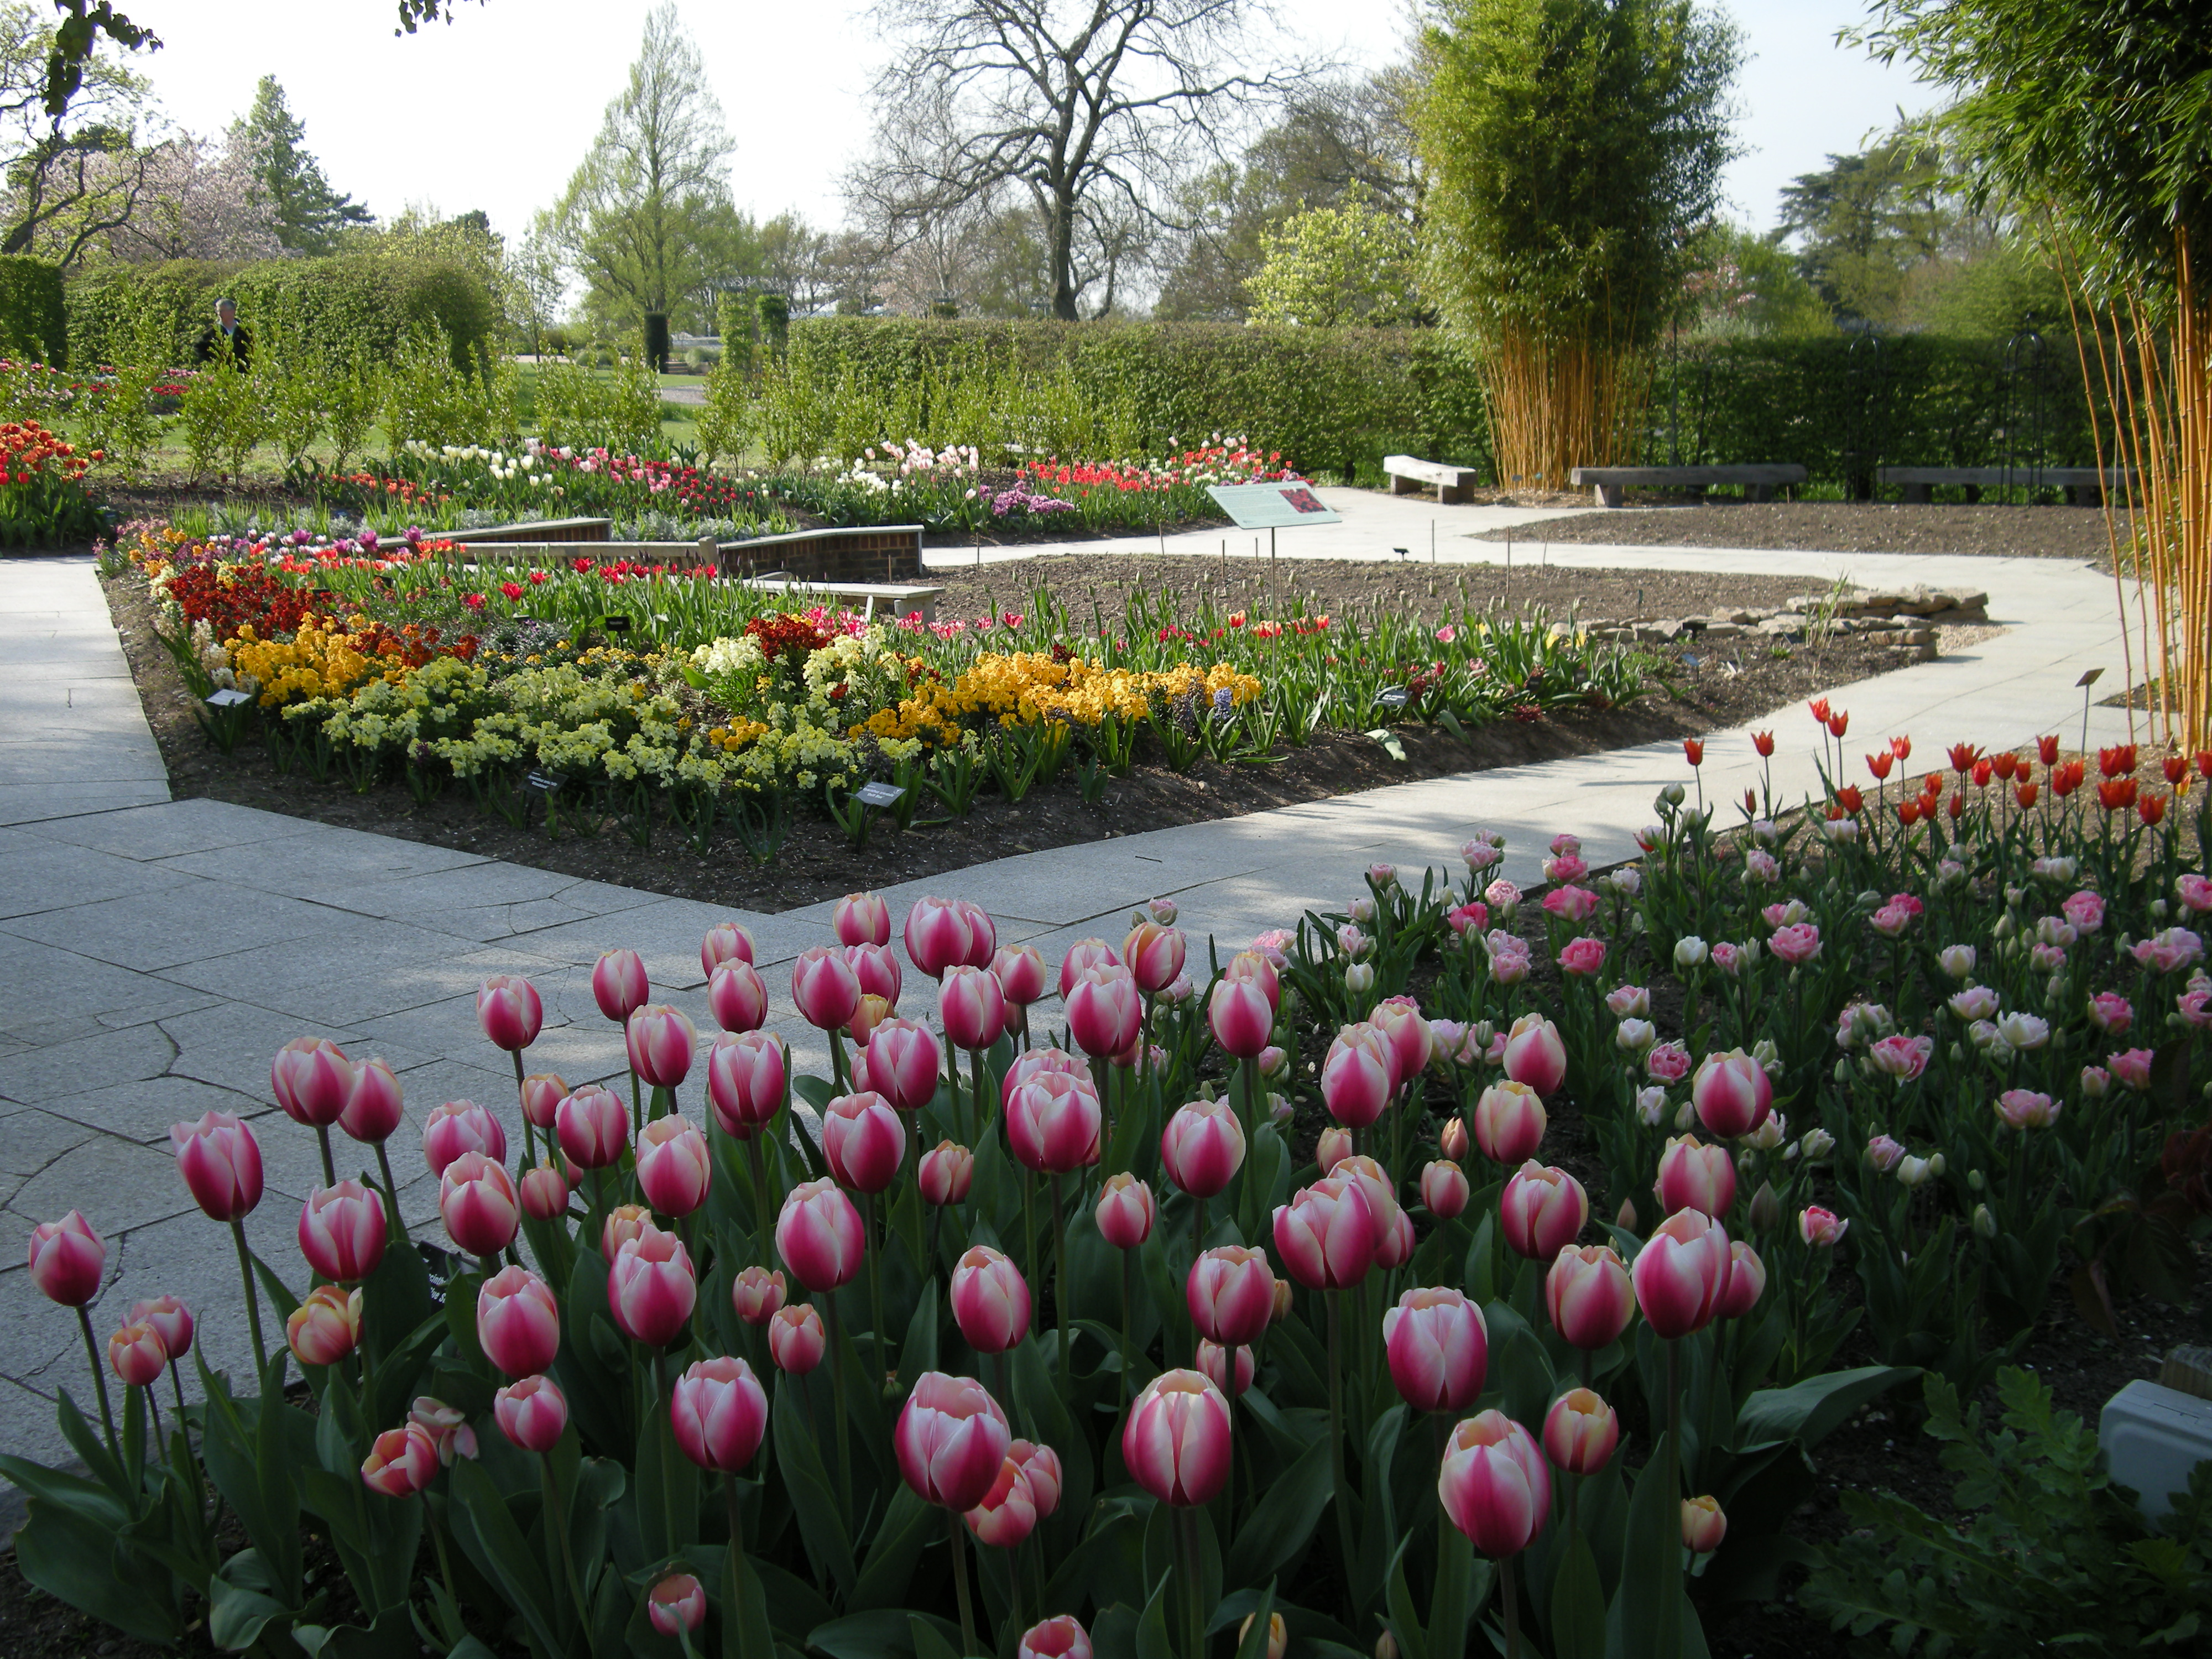 Tulips at Wisley